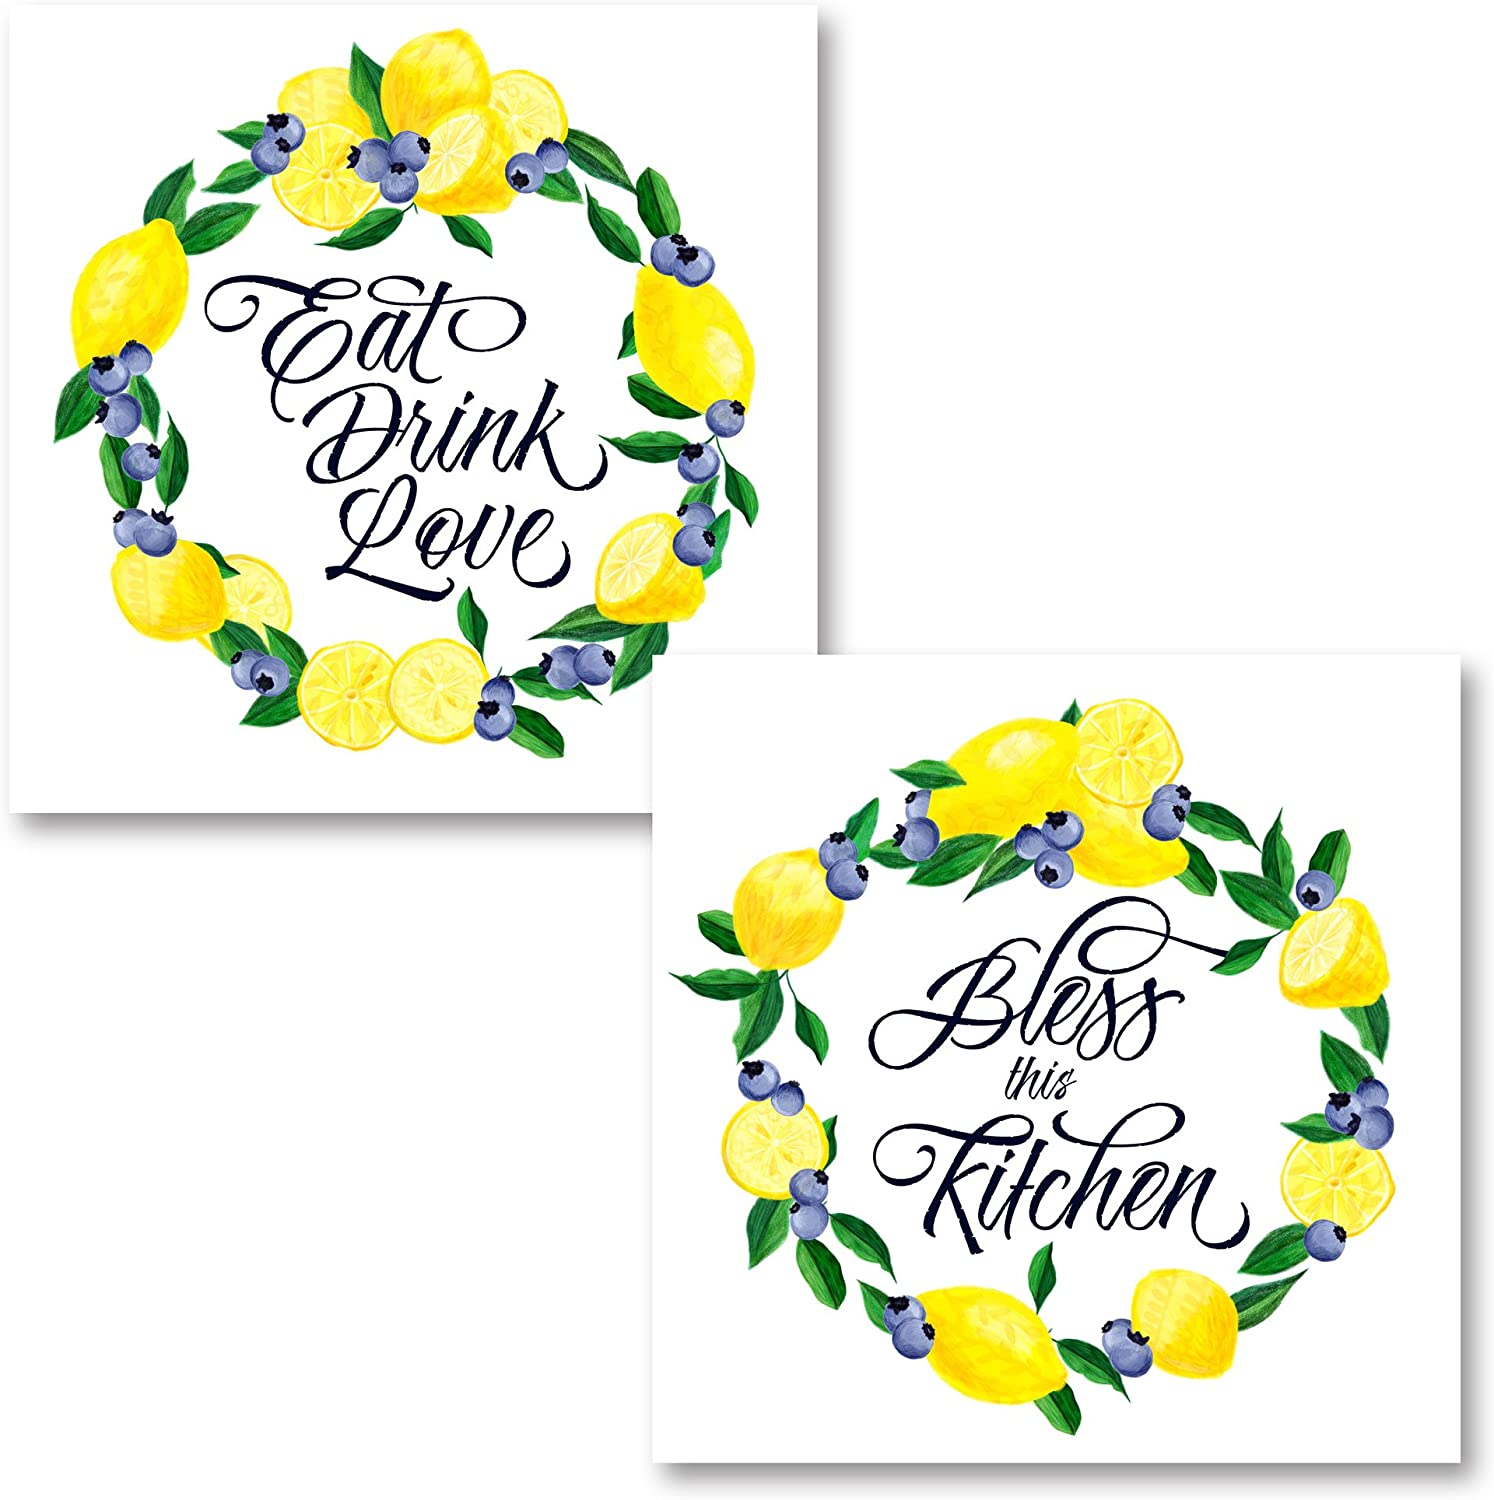 """Lovely White, Green and Blue Lemon Berry """"Bless This Kitchen"""" and """"Eat Drink Love"""" Sign Set by Noonday Design; Two 12x12in Unframed Paper Posters"""